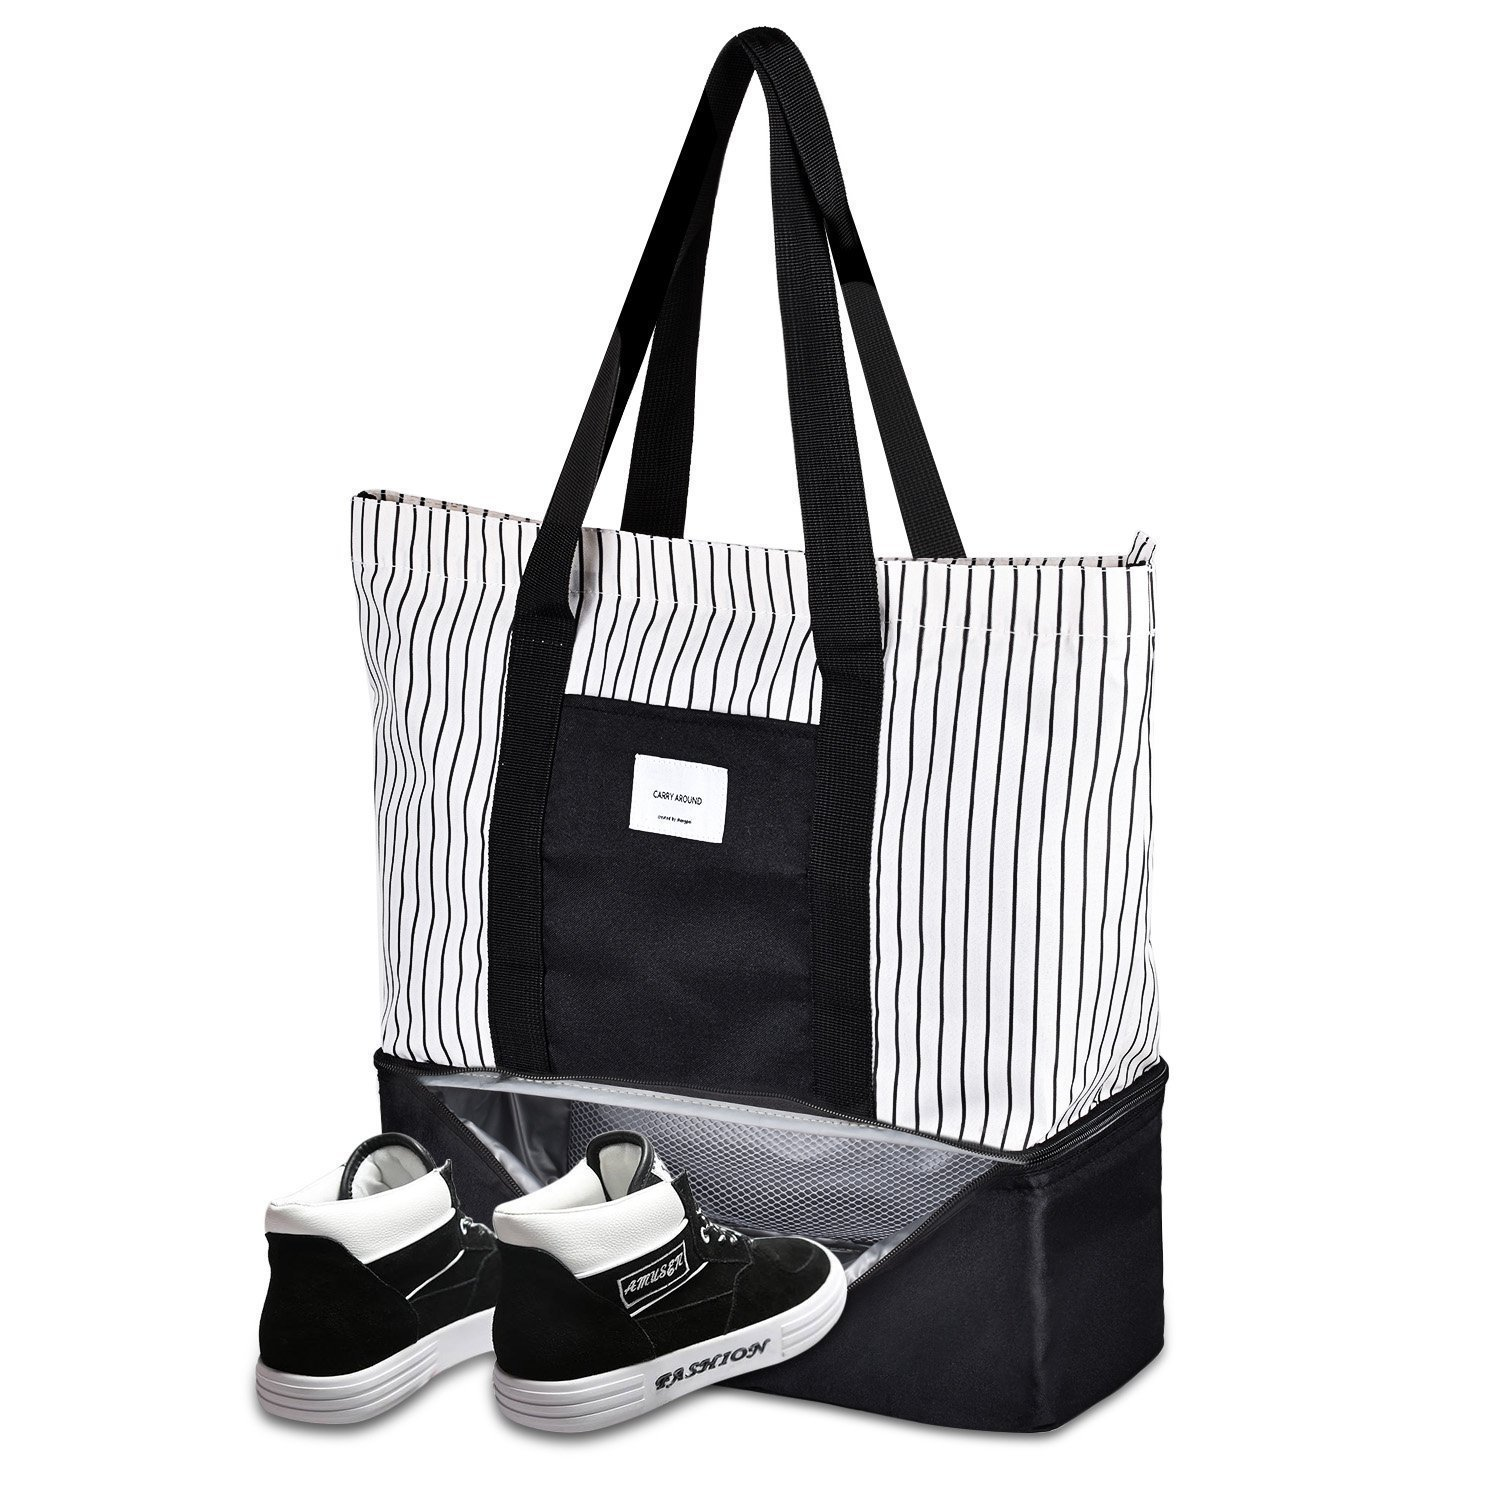 Soonnix Travel Tote Bag Work Lunch Shopping Shoulder Handbag with Insulated Picnic Cooler Top Zipper for Women Girls (Black+White)